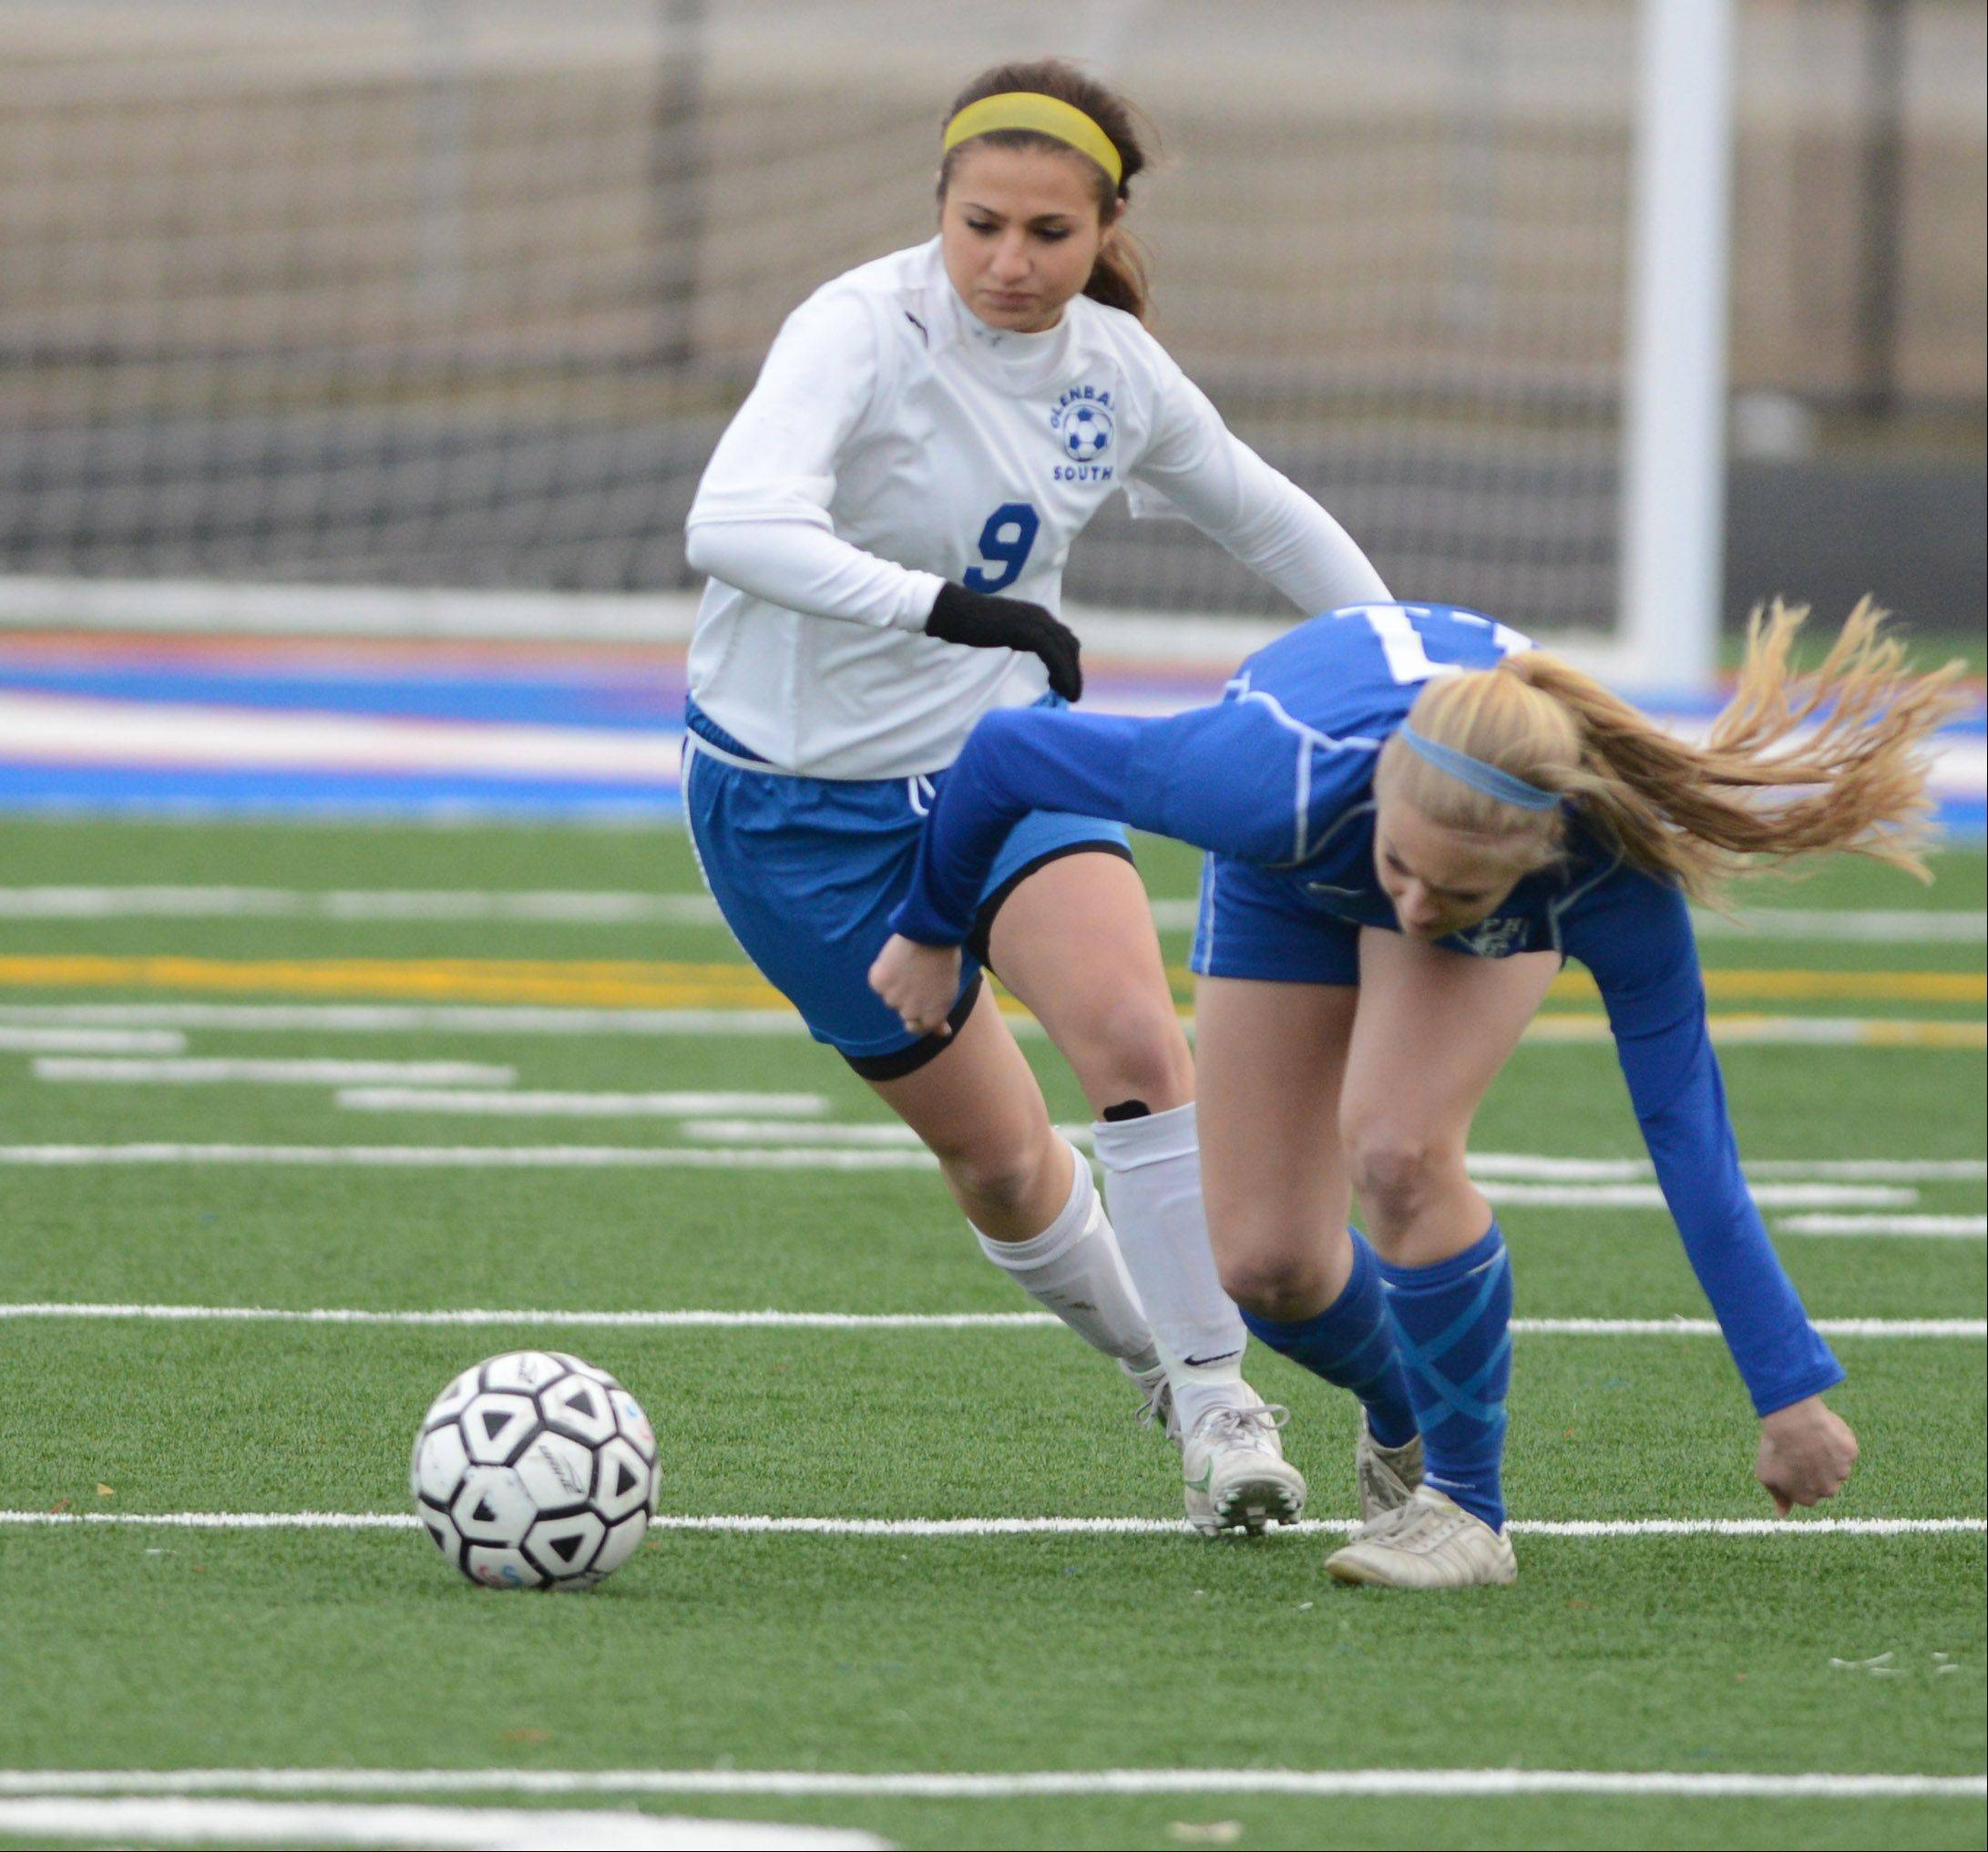 Danielle Pitaro,left, of Glenbard South and Corky Hart of St. Francis go after a loose ball during the St. Francis at Glenbard South girls soccer gamer Friday.